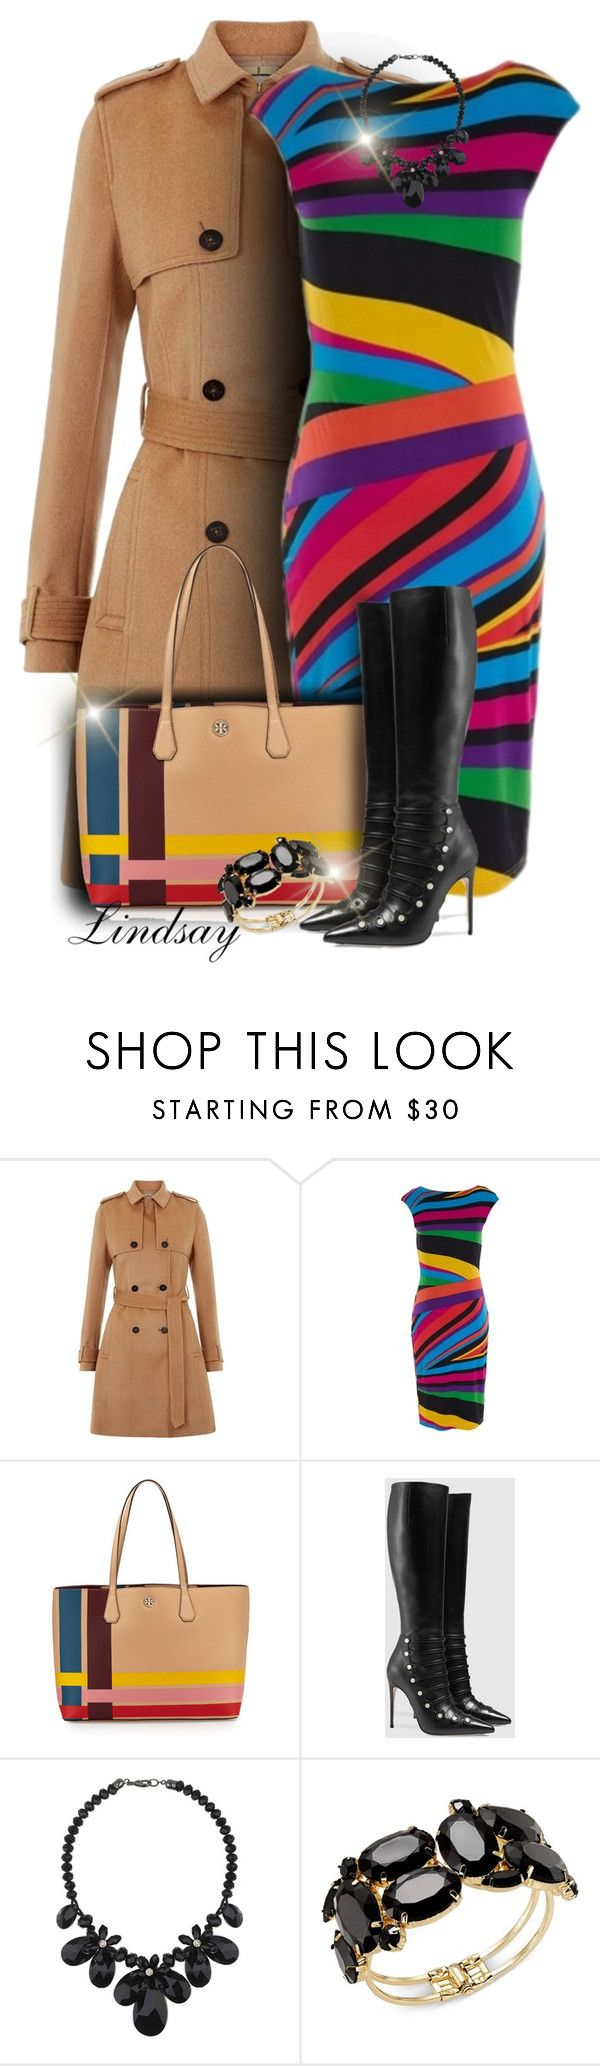 """Tory Burch Perry Variegated-Stripe Tote Bag"" by lindsayd78 ❤ liked on Polyvore featuring Hobbs, Tory Burch, Gucci, Wallis and Thalia Sodi"